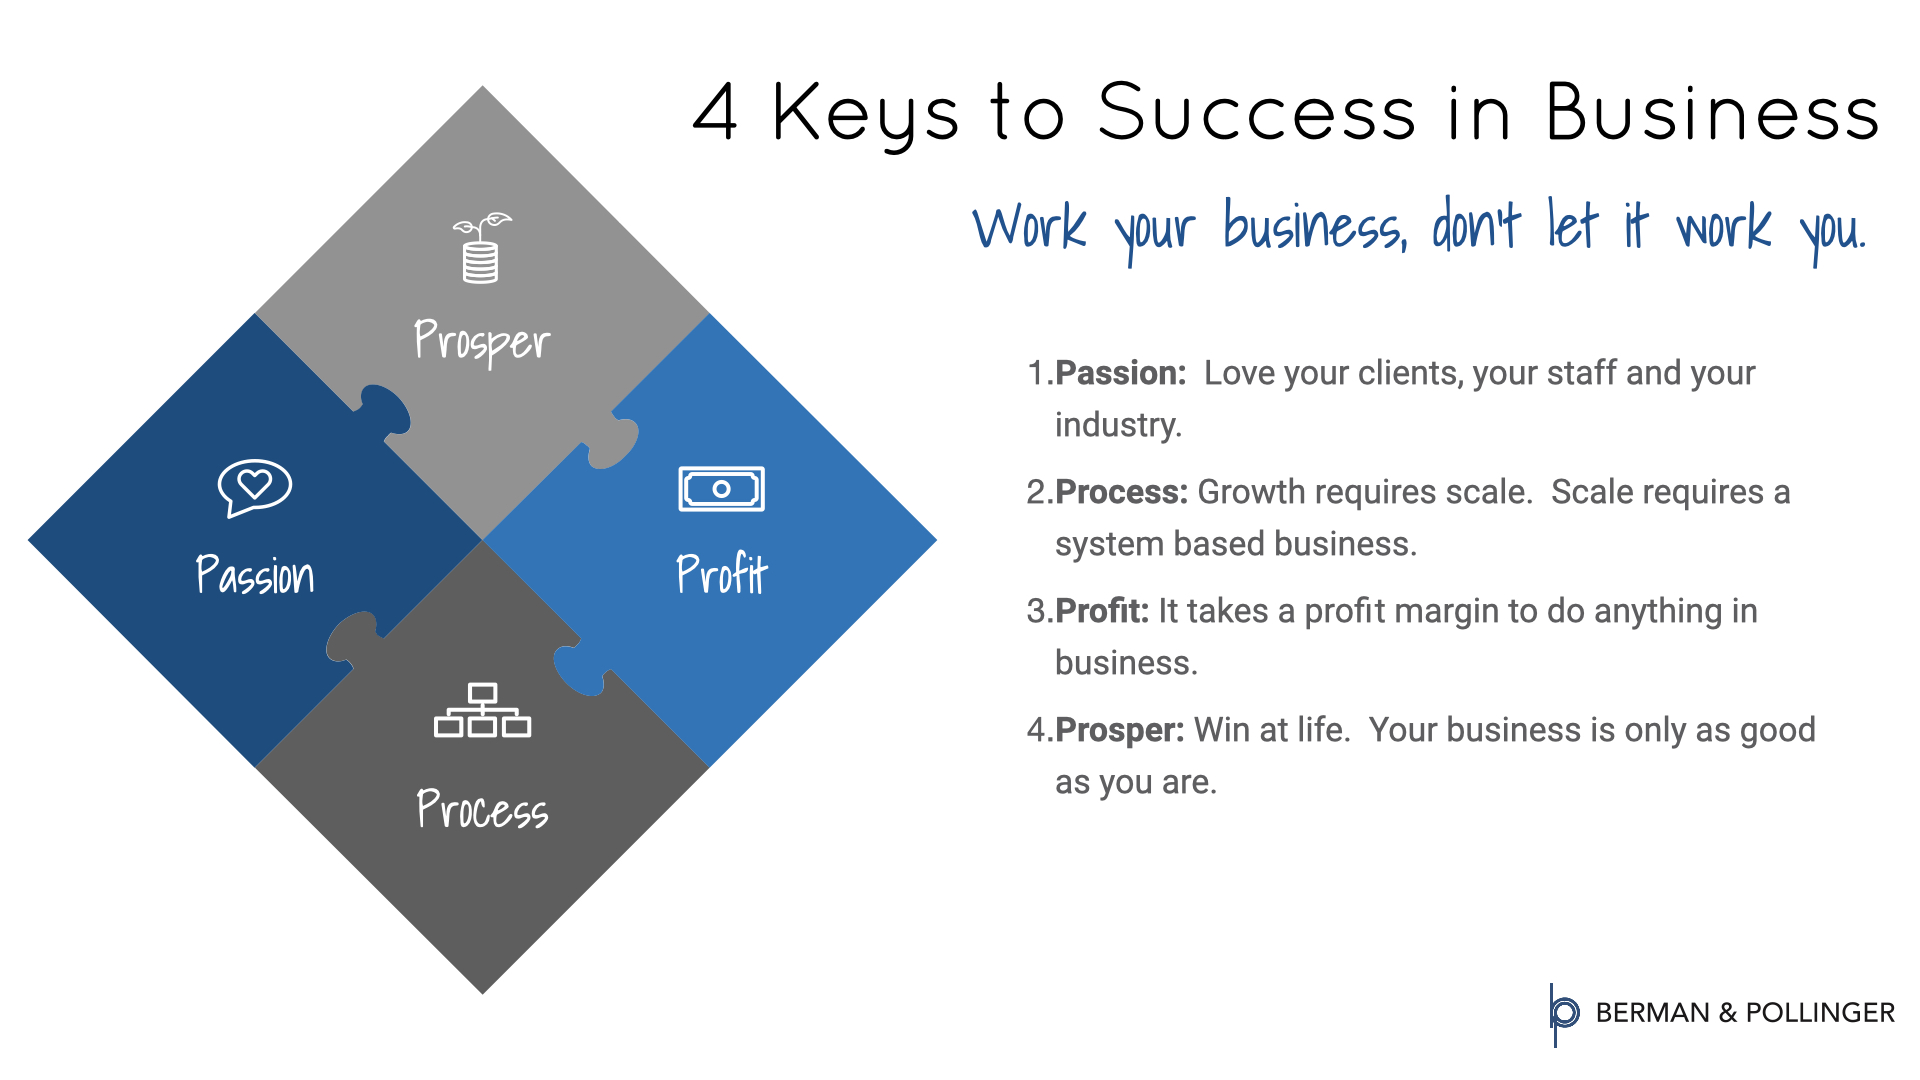 4 Keys to Success in Business Infographic